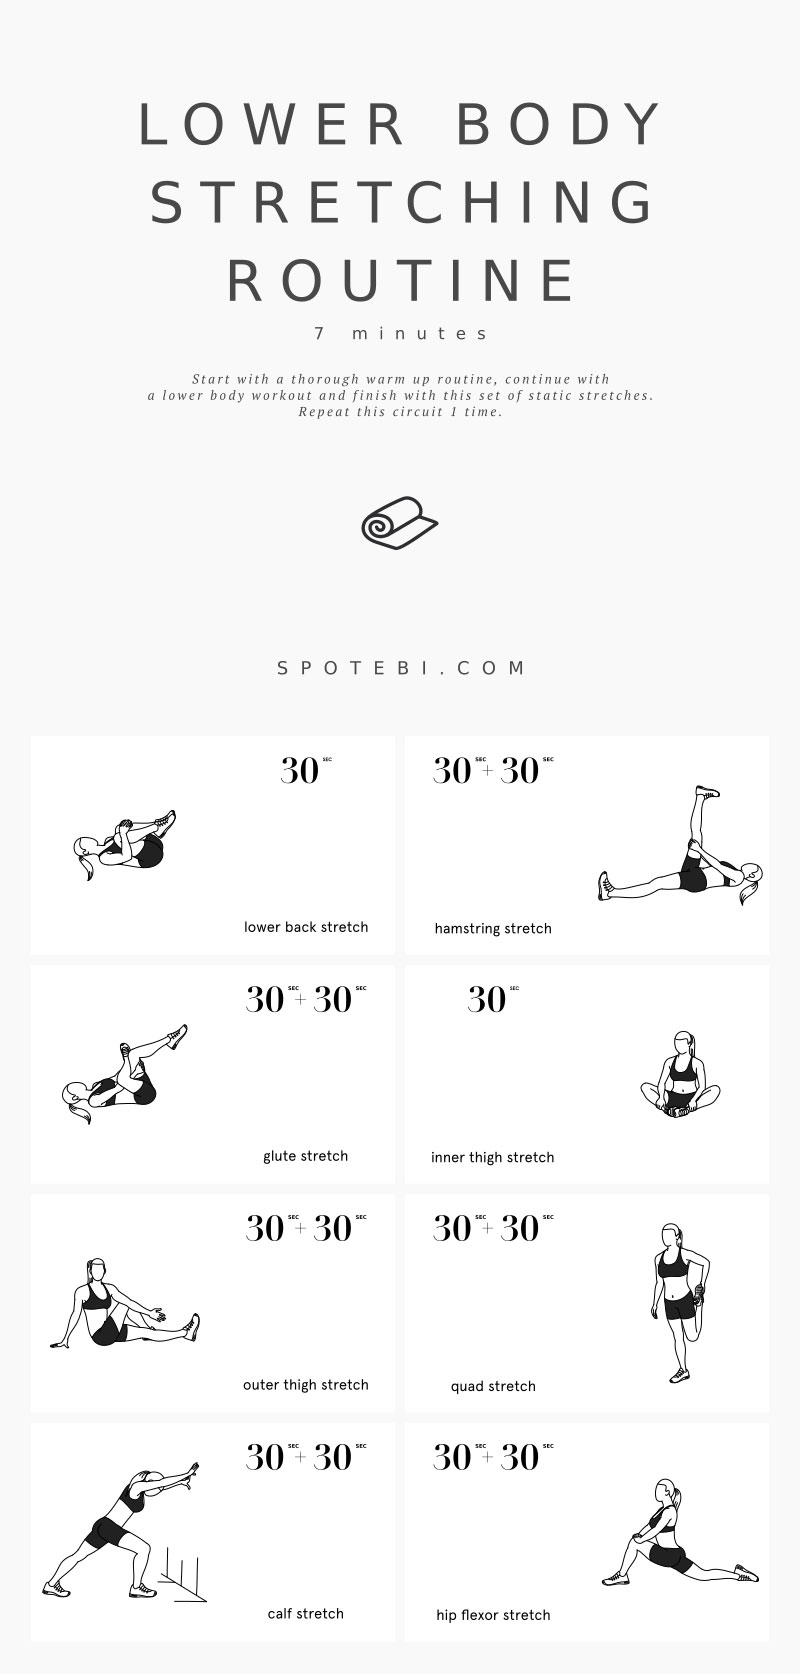 Start improving your flexibility today with the help of this lower body stretching routine. Add these leg, hip, and glute stretches at the end of your workout routine to reduce the risk of injuries, relax the muscles, and improve joint range of motion. https://www.spotebi.com/workout-routines/lower-body-stretching-routine/